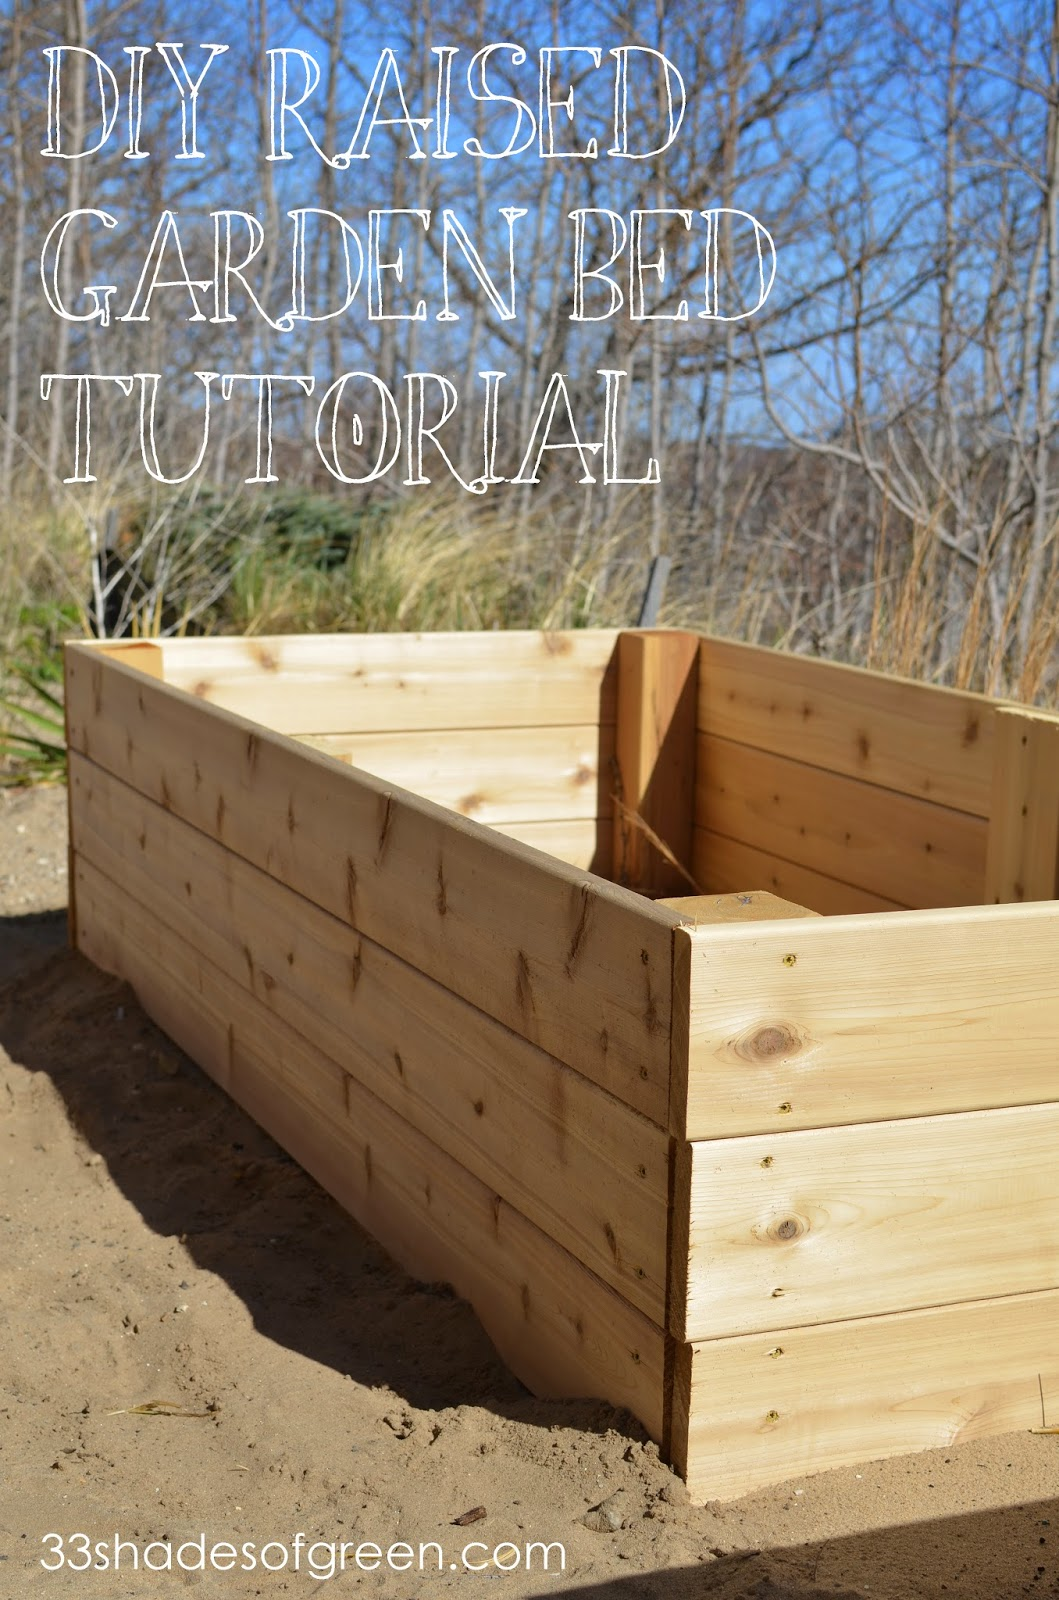 creative that easy build i garden assemble bed a and projects to are ideas kits diy raised